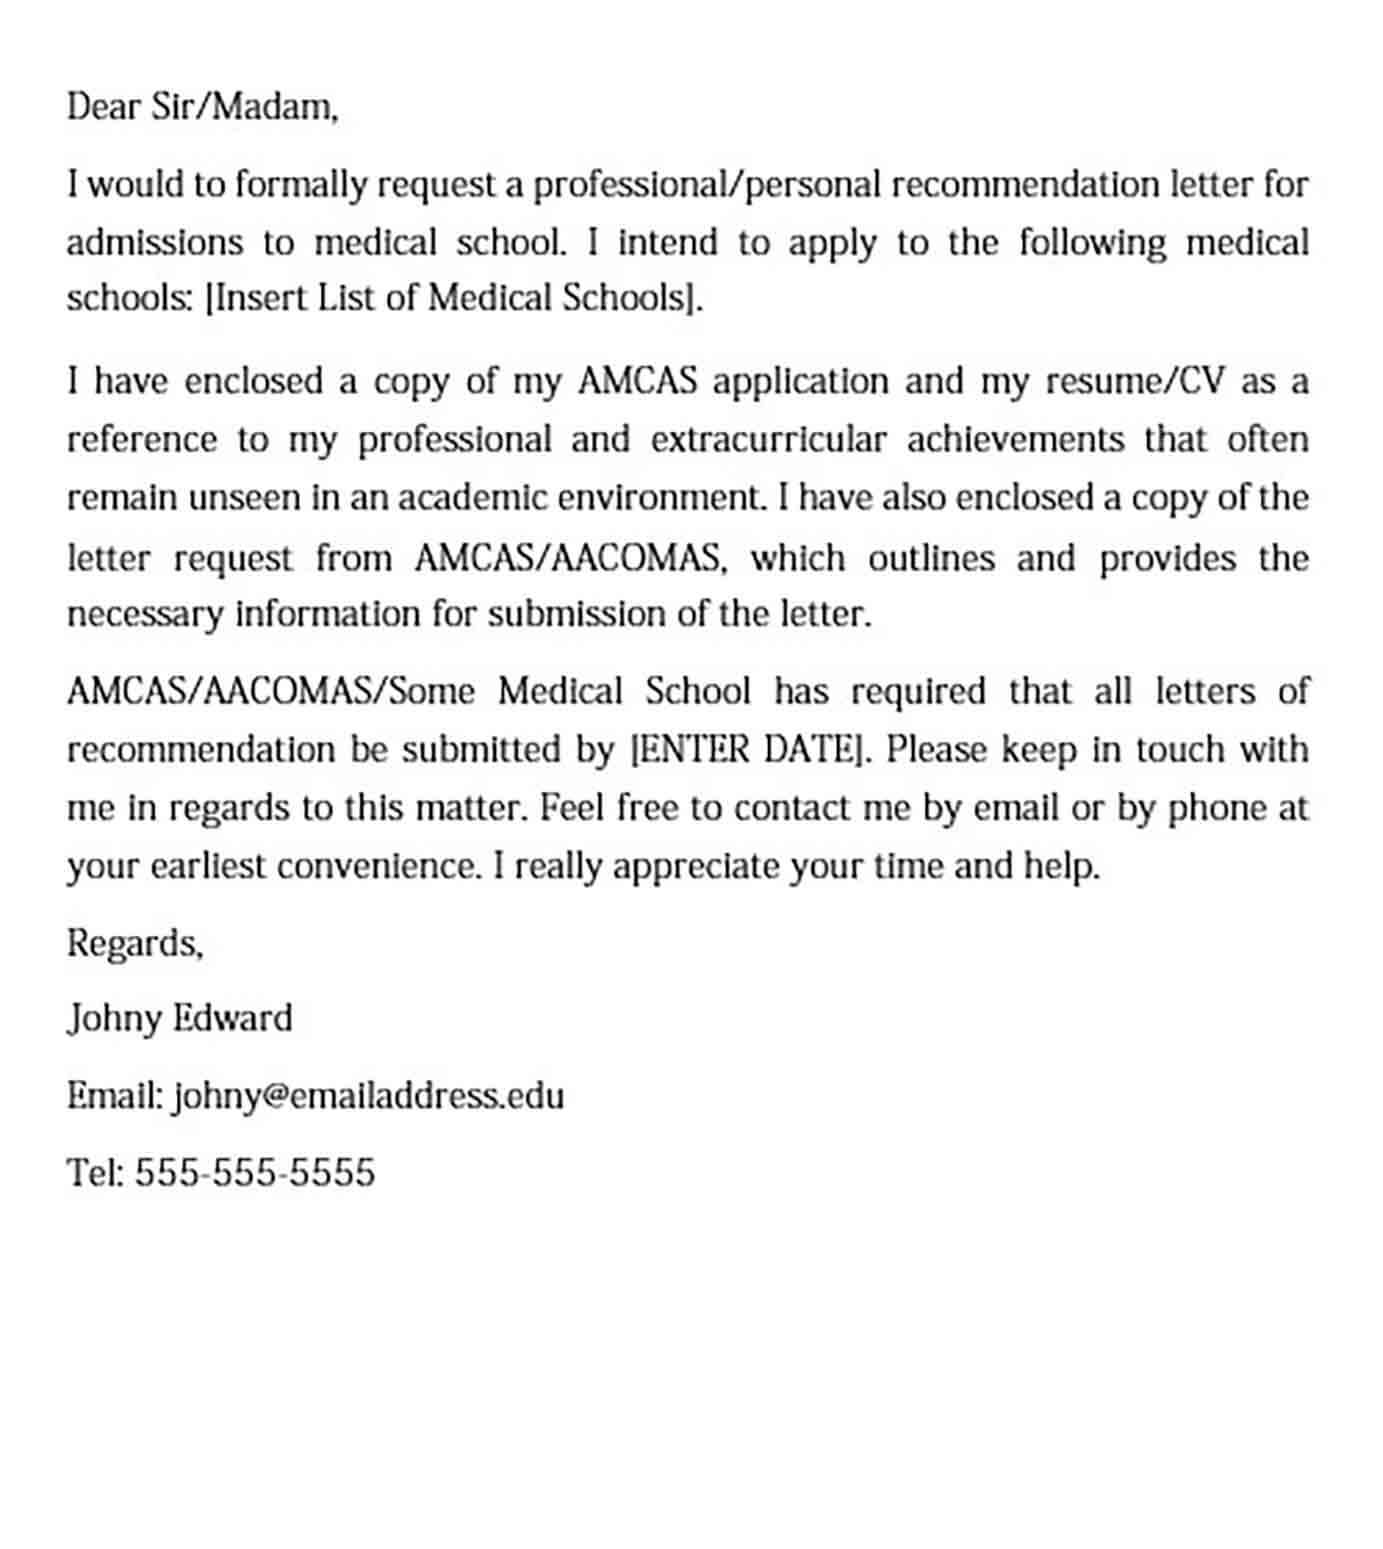 Medical School Recommendation Request Letter